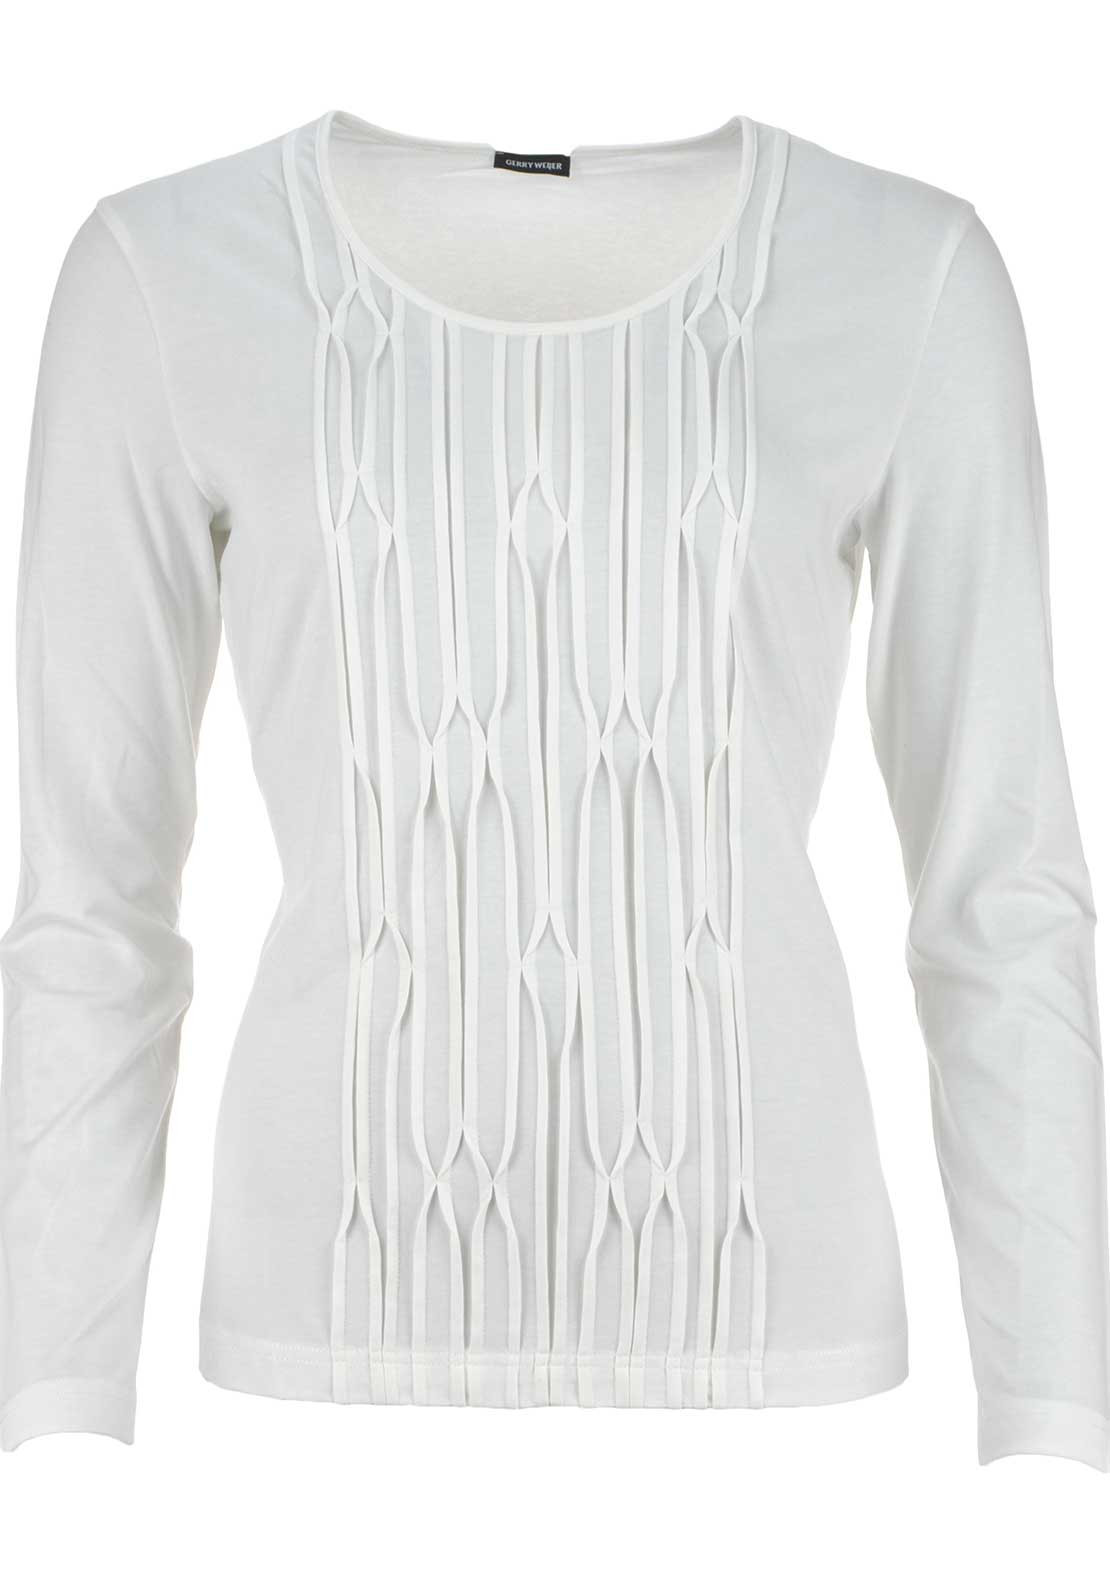 Gerry Weber Embossed Print Long Sleeve T-Shirt, Ivory